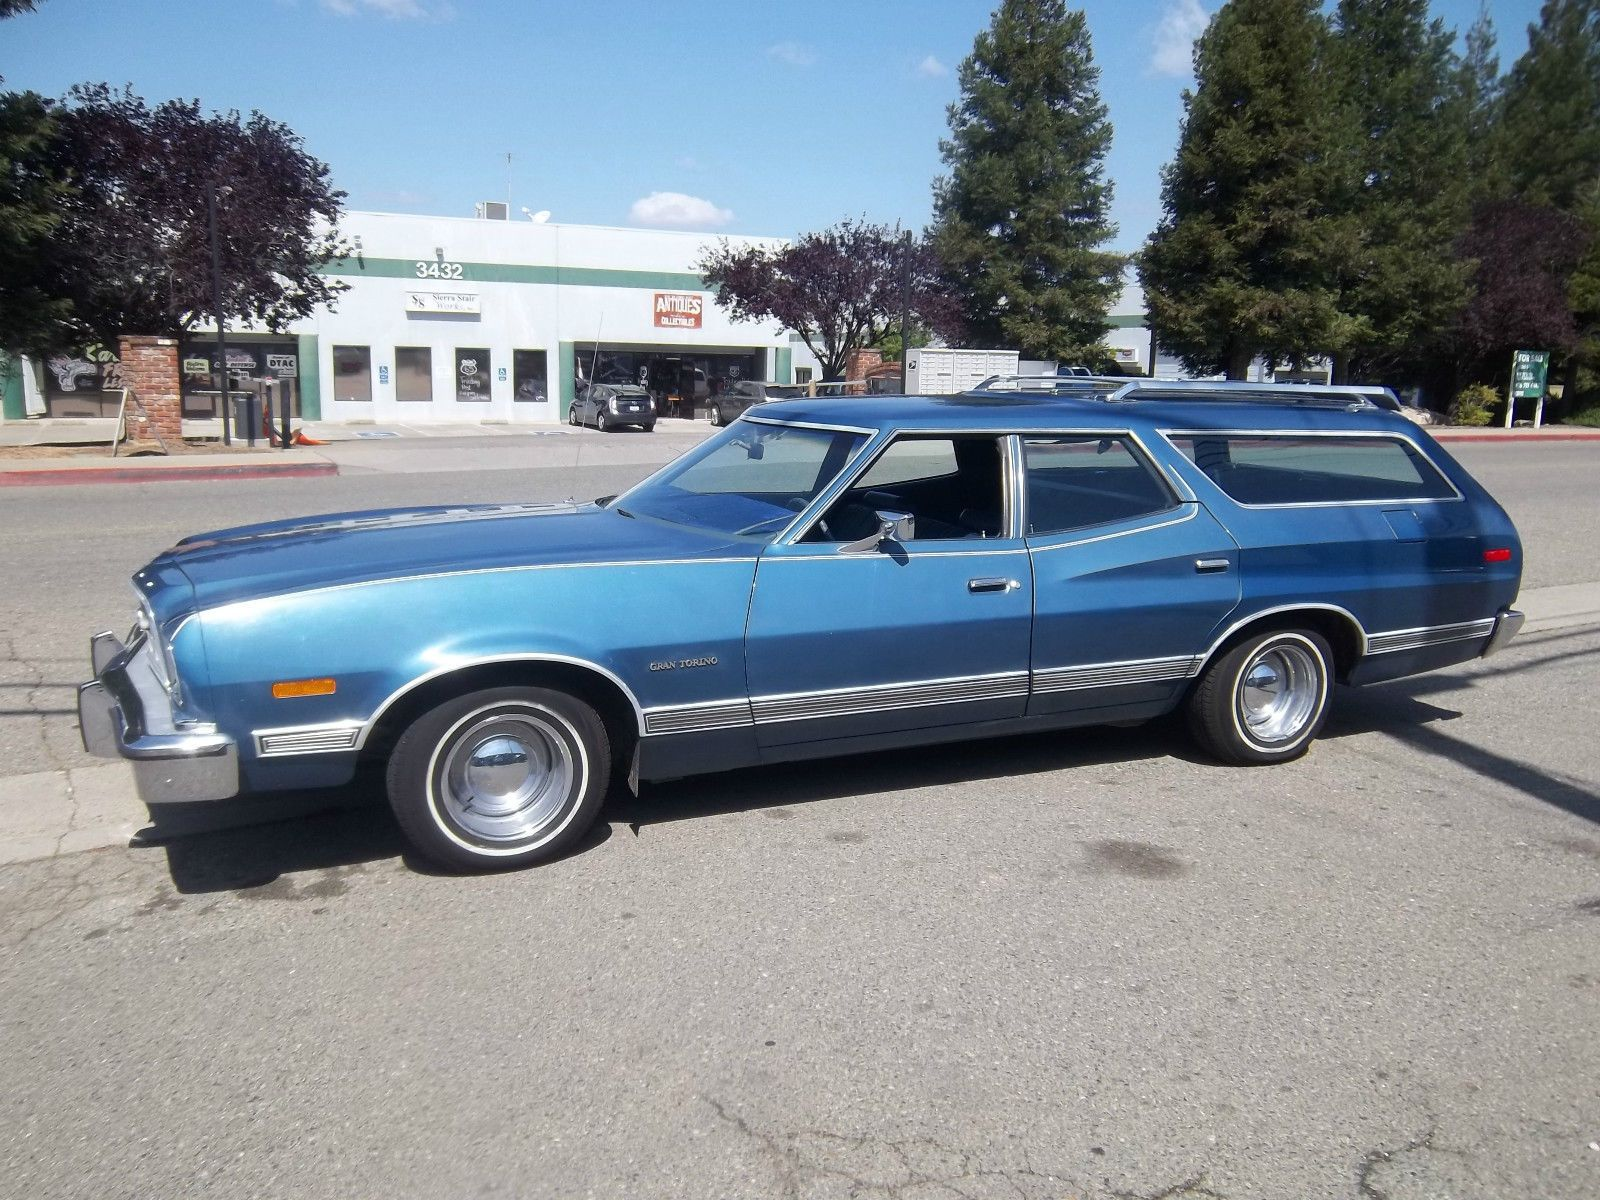 73 Ford Gran Torino Station Wagon Station Wagon Ford Torino Wagon